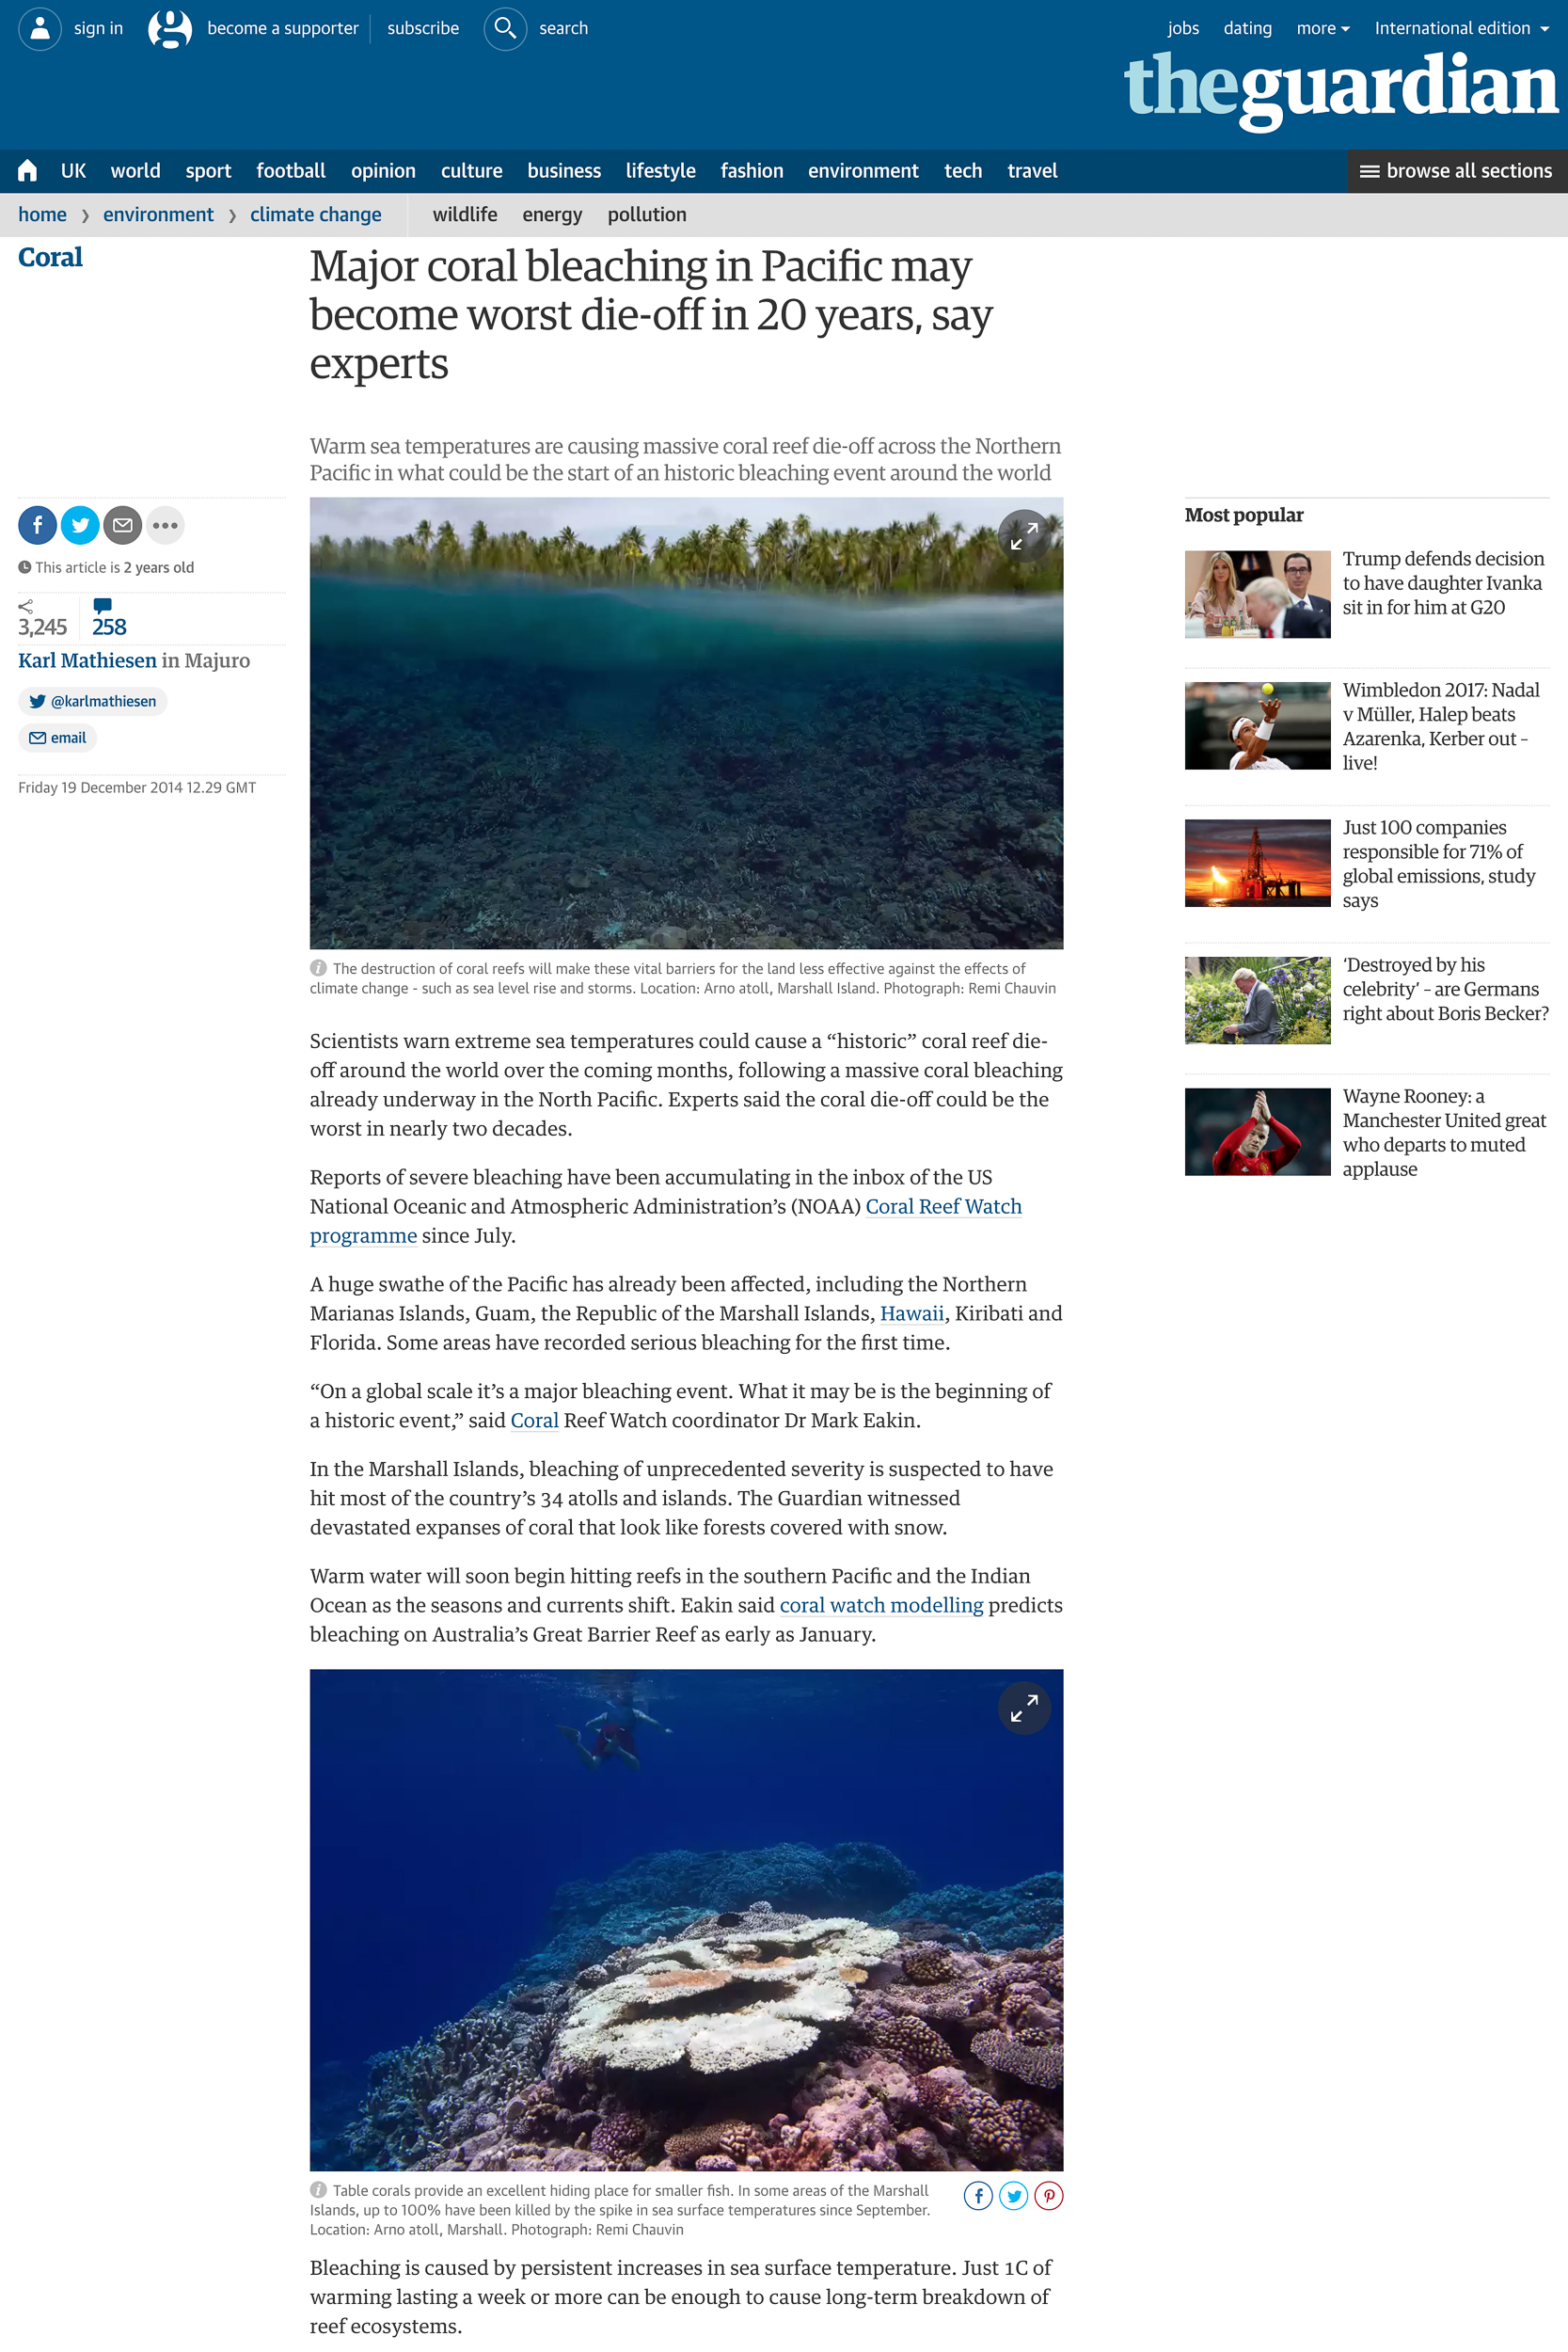 Pacific Coral Bleaching - The Guardian